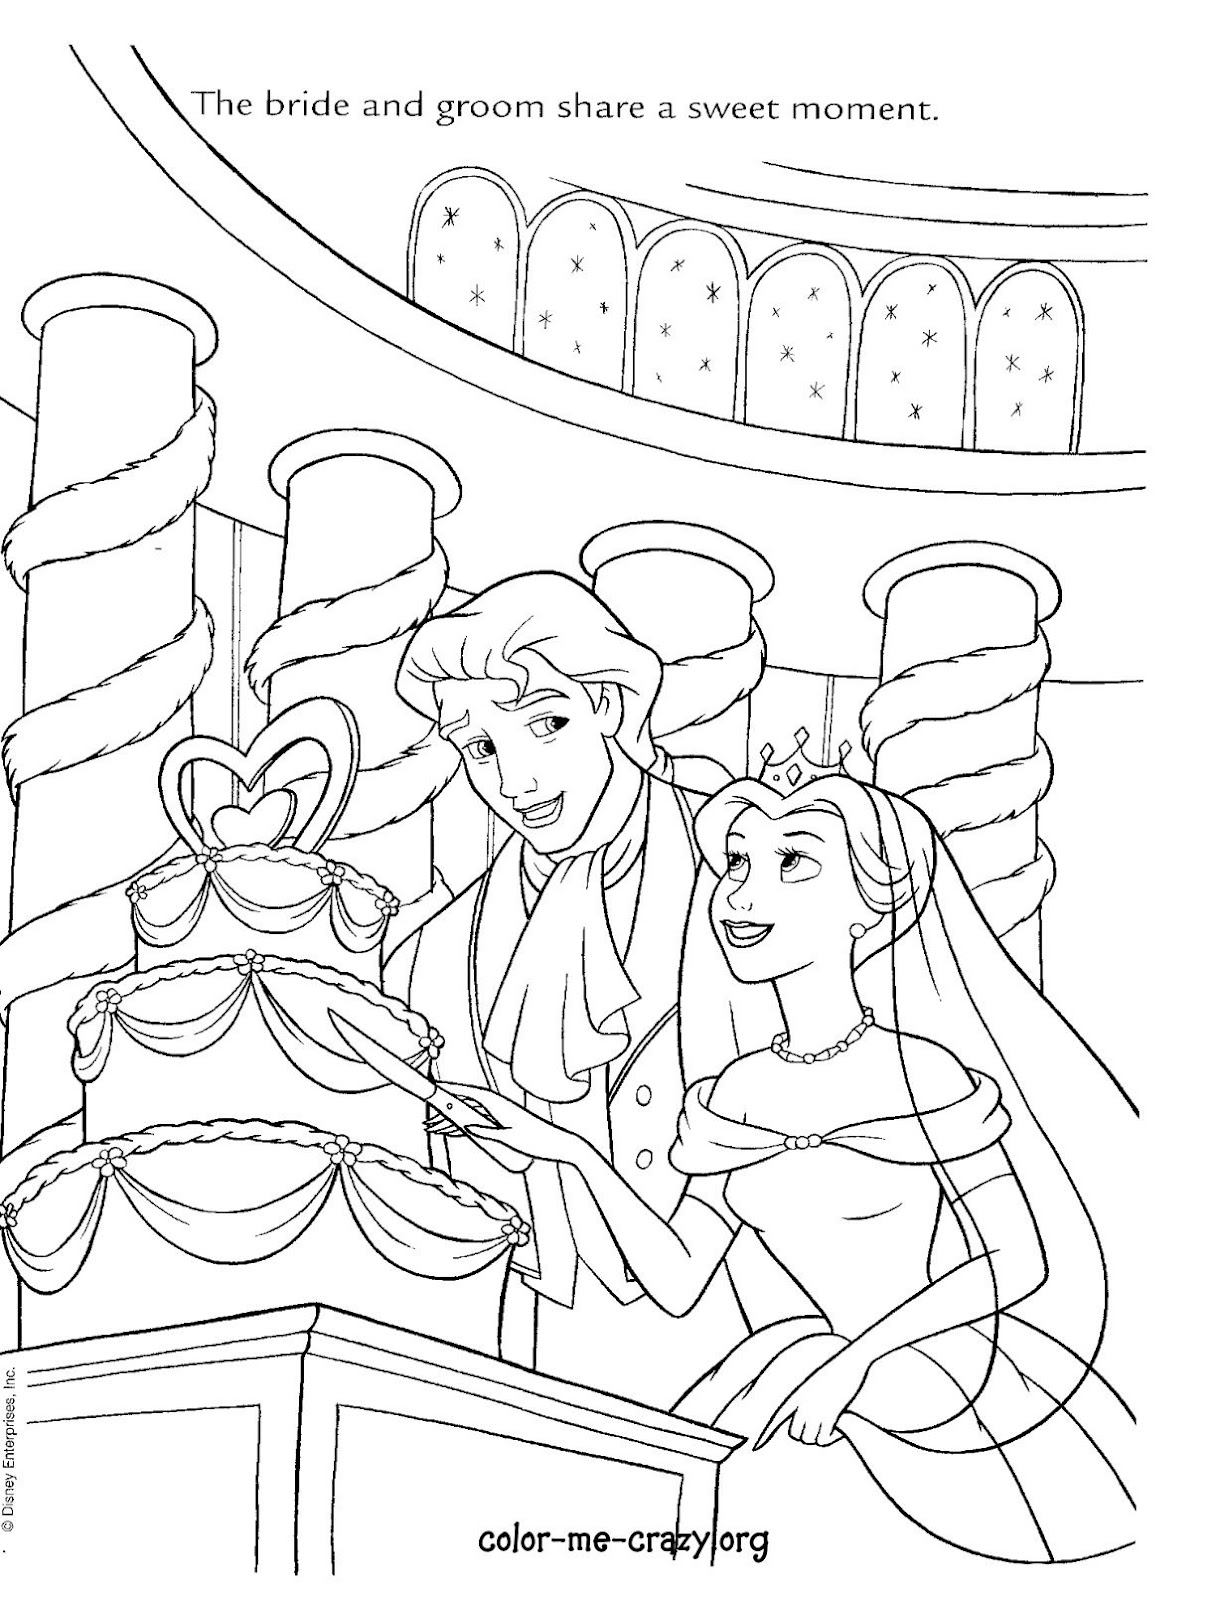 wedding day disney wedding coloring pages ariel and prince eric wedding day coloring page coloring coloring day wedding wedding disney pages